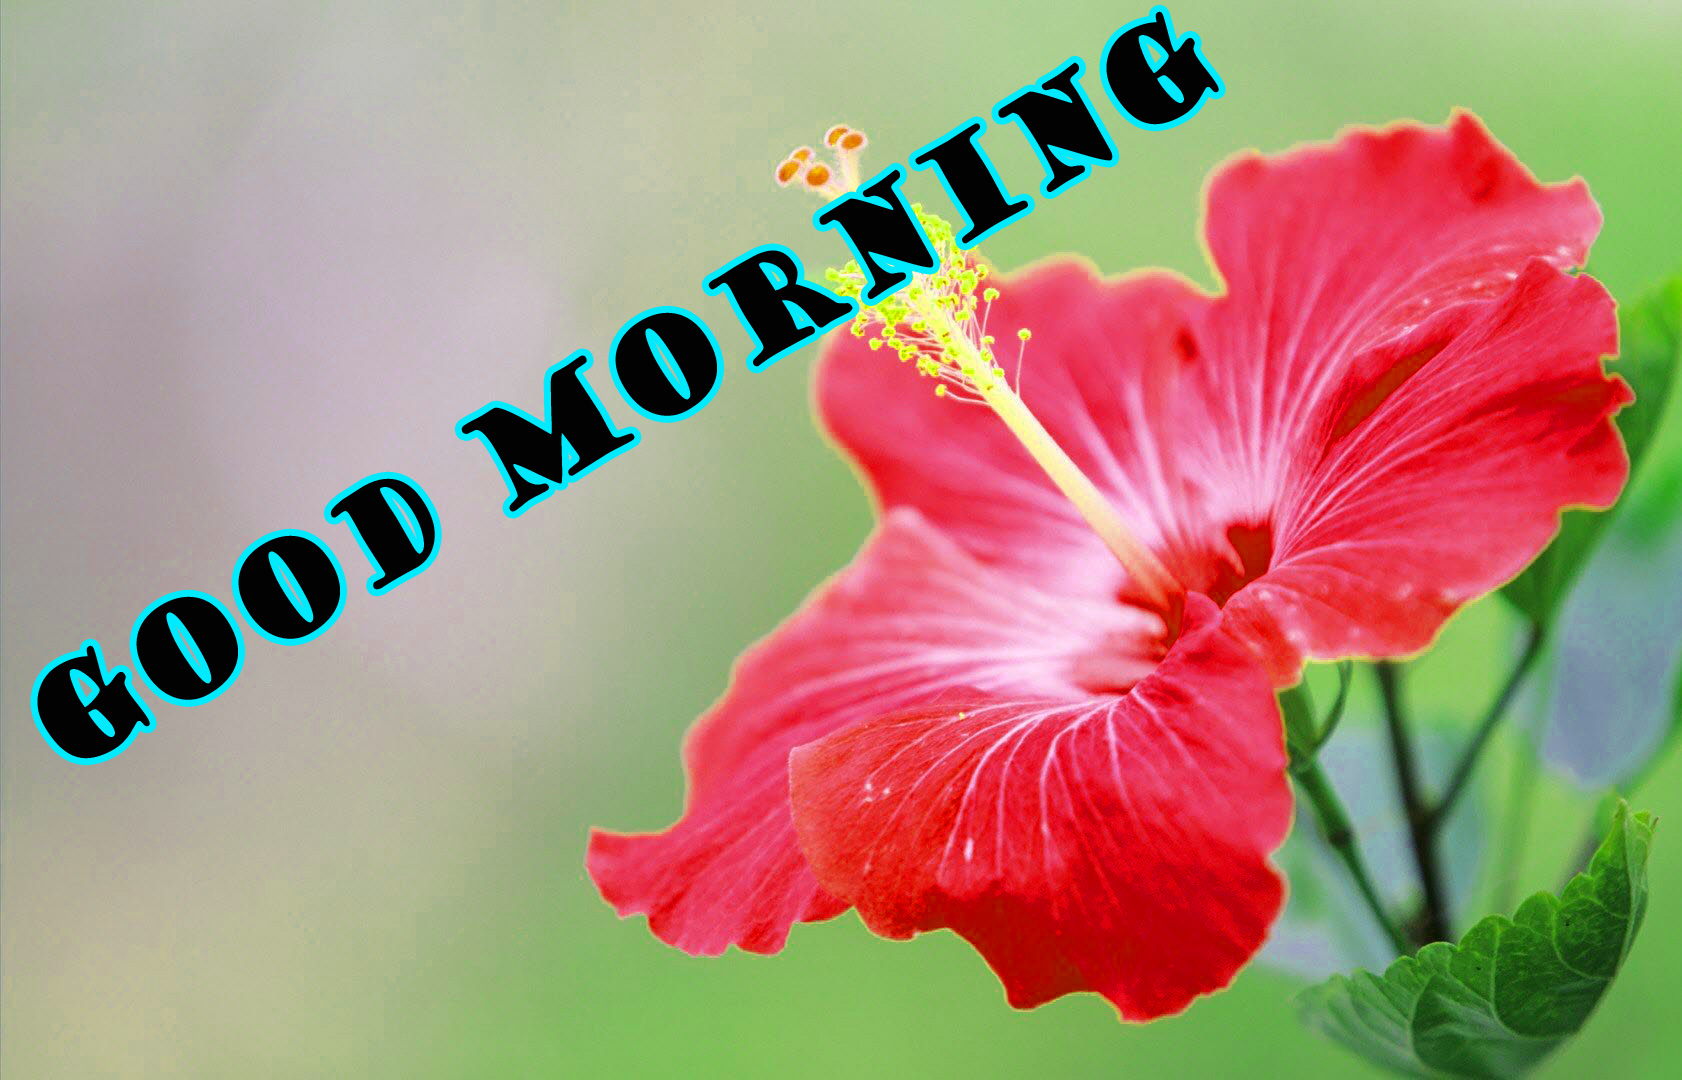 Good Morning Flowers Pictures Images Photo Free HD Download